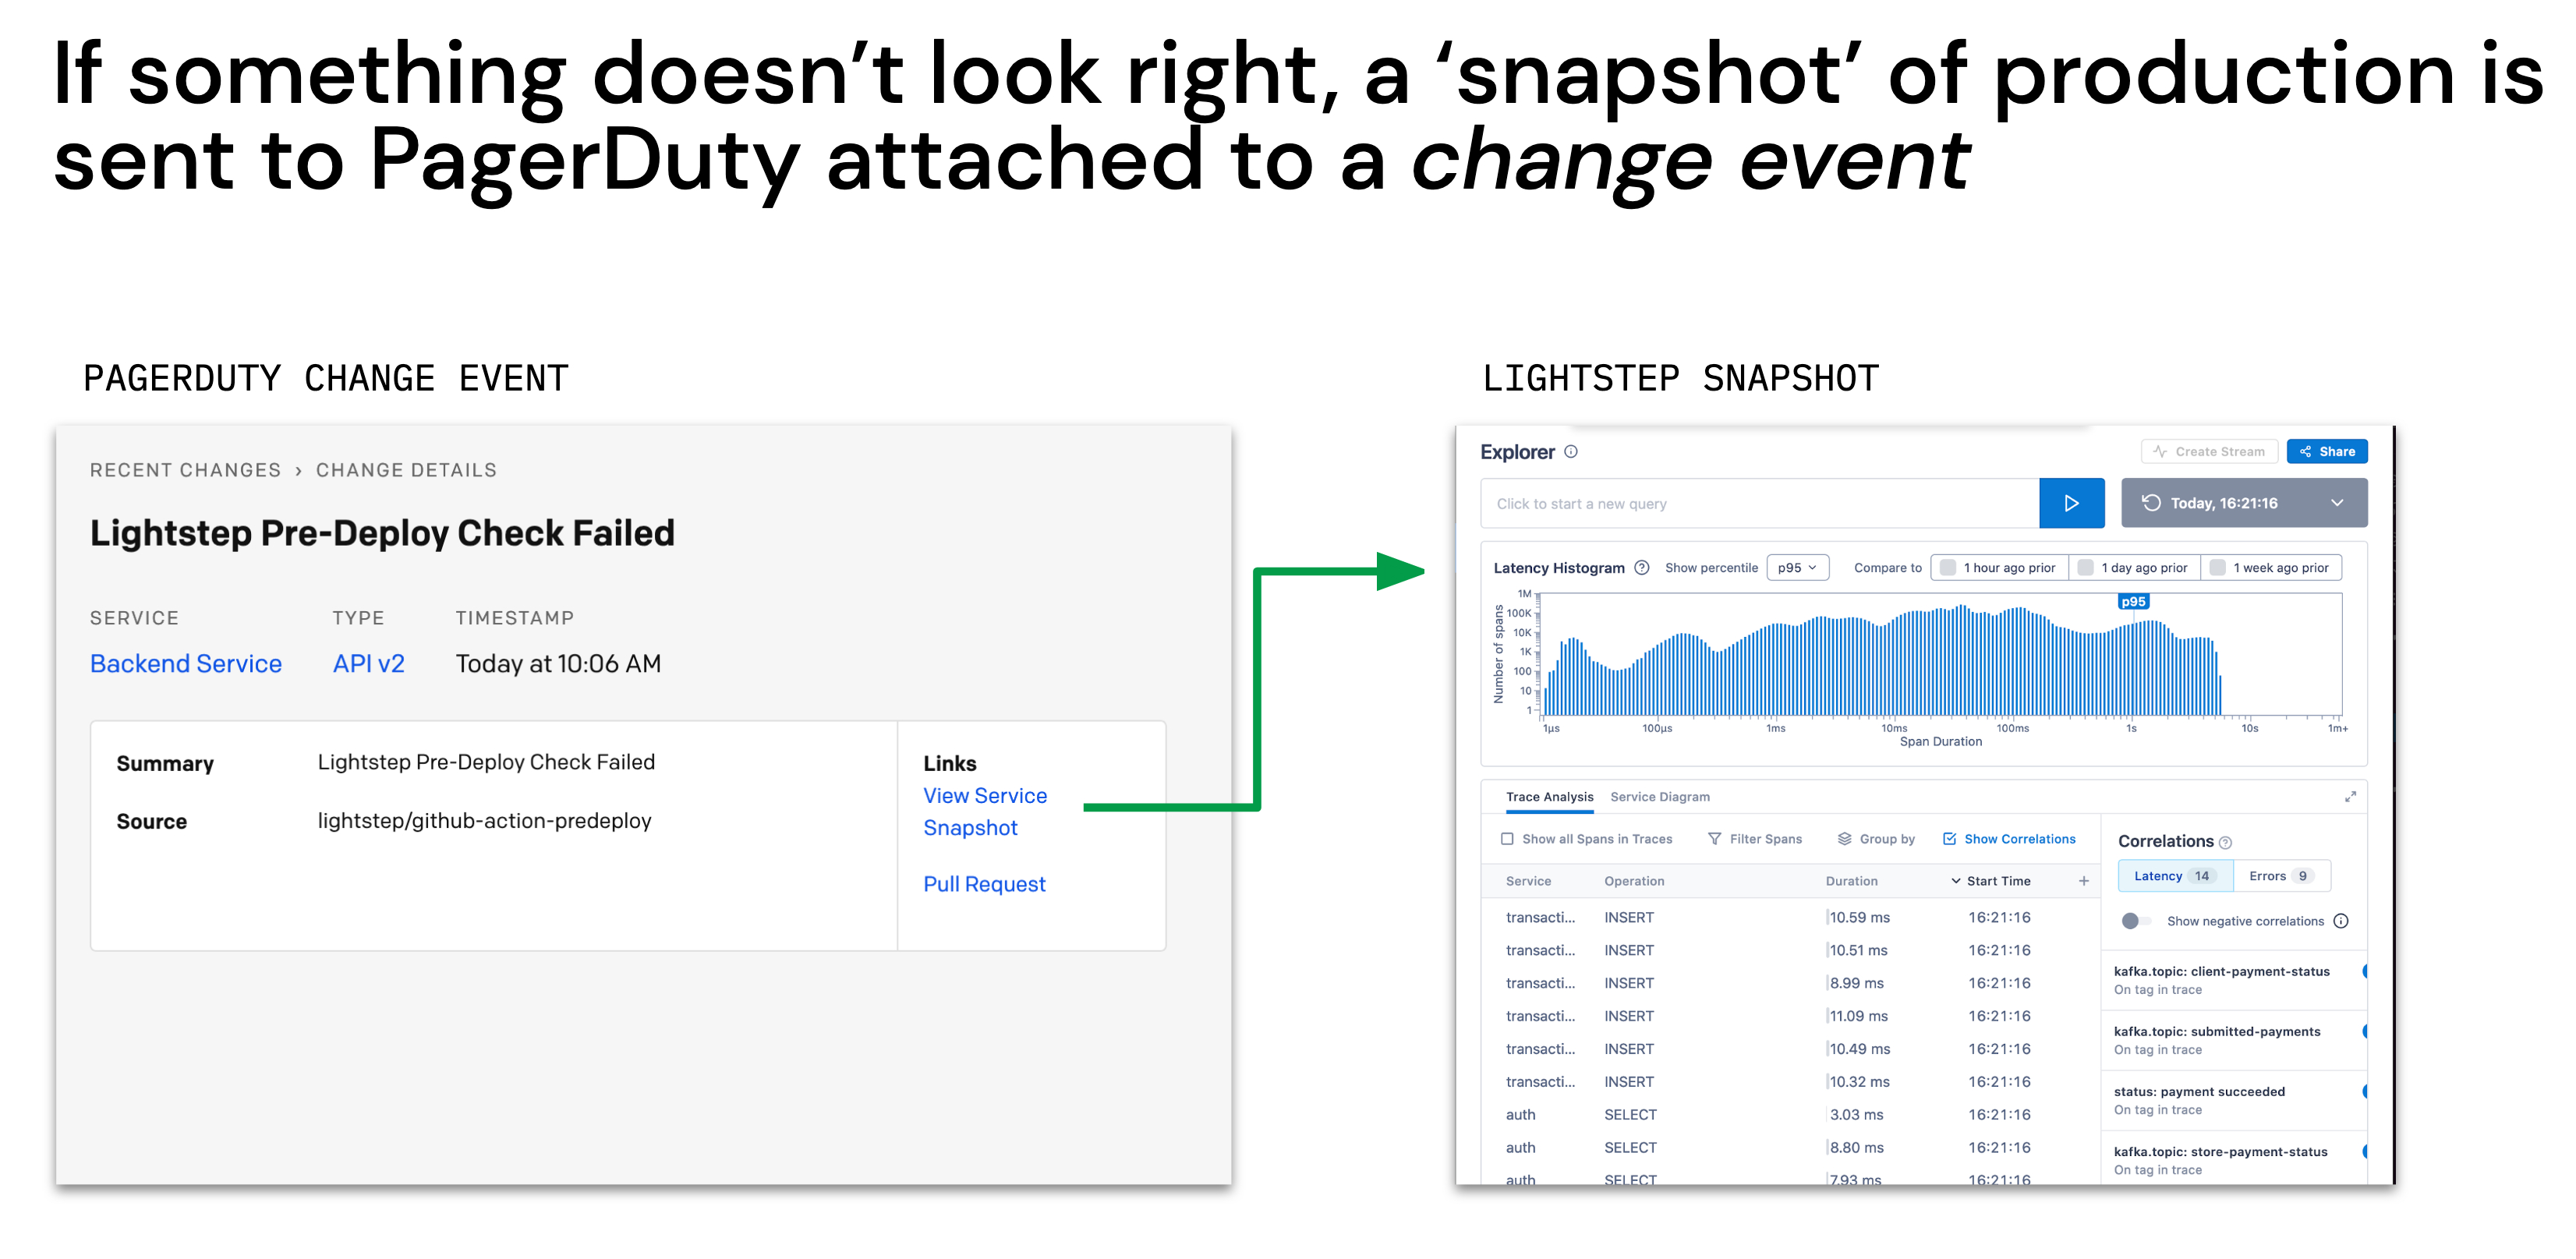 PagerDuty to Lightstep Snapshot